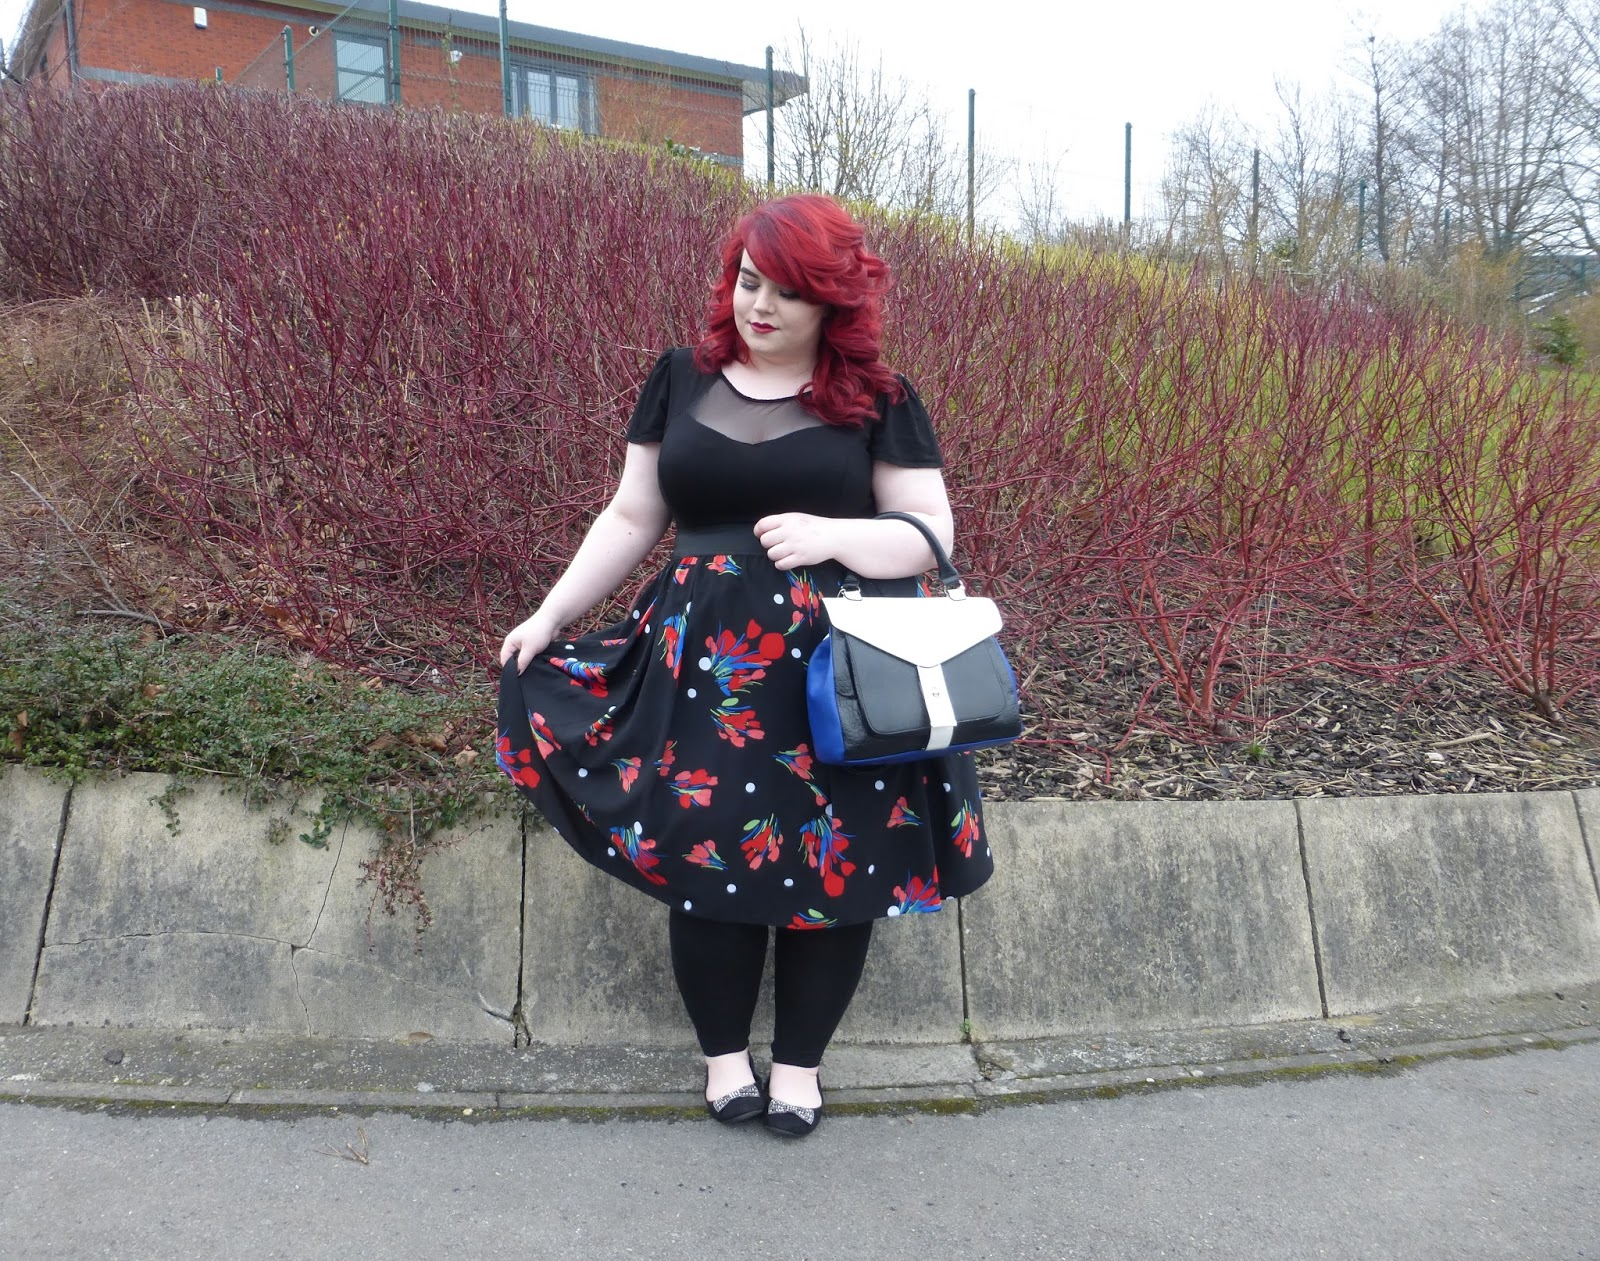 Accessorising with Scarlett & Jo, House of Fraser, Shoe Zone, shemightbeloved, sheffield plus size blogger, georgina grogan